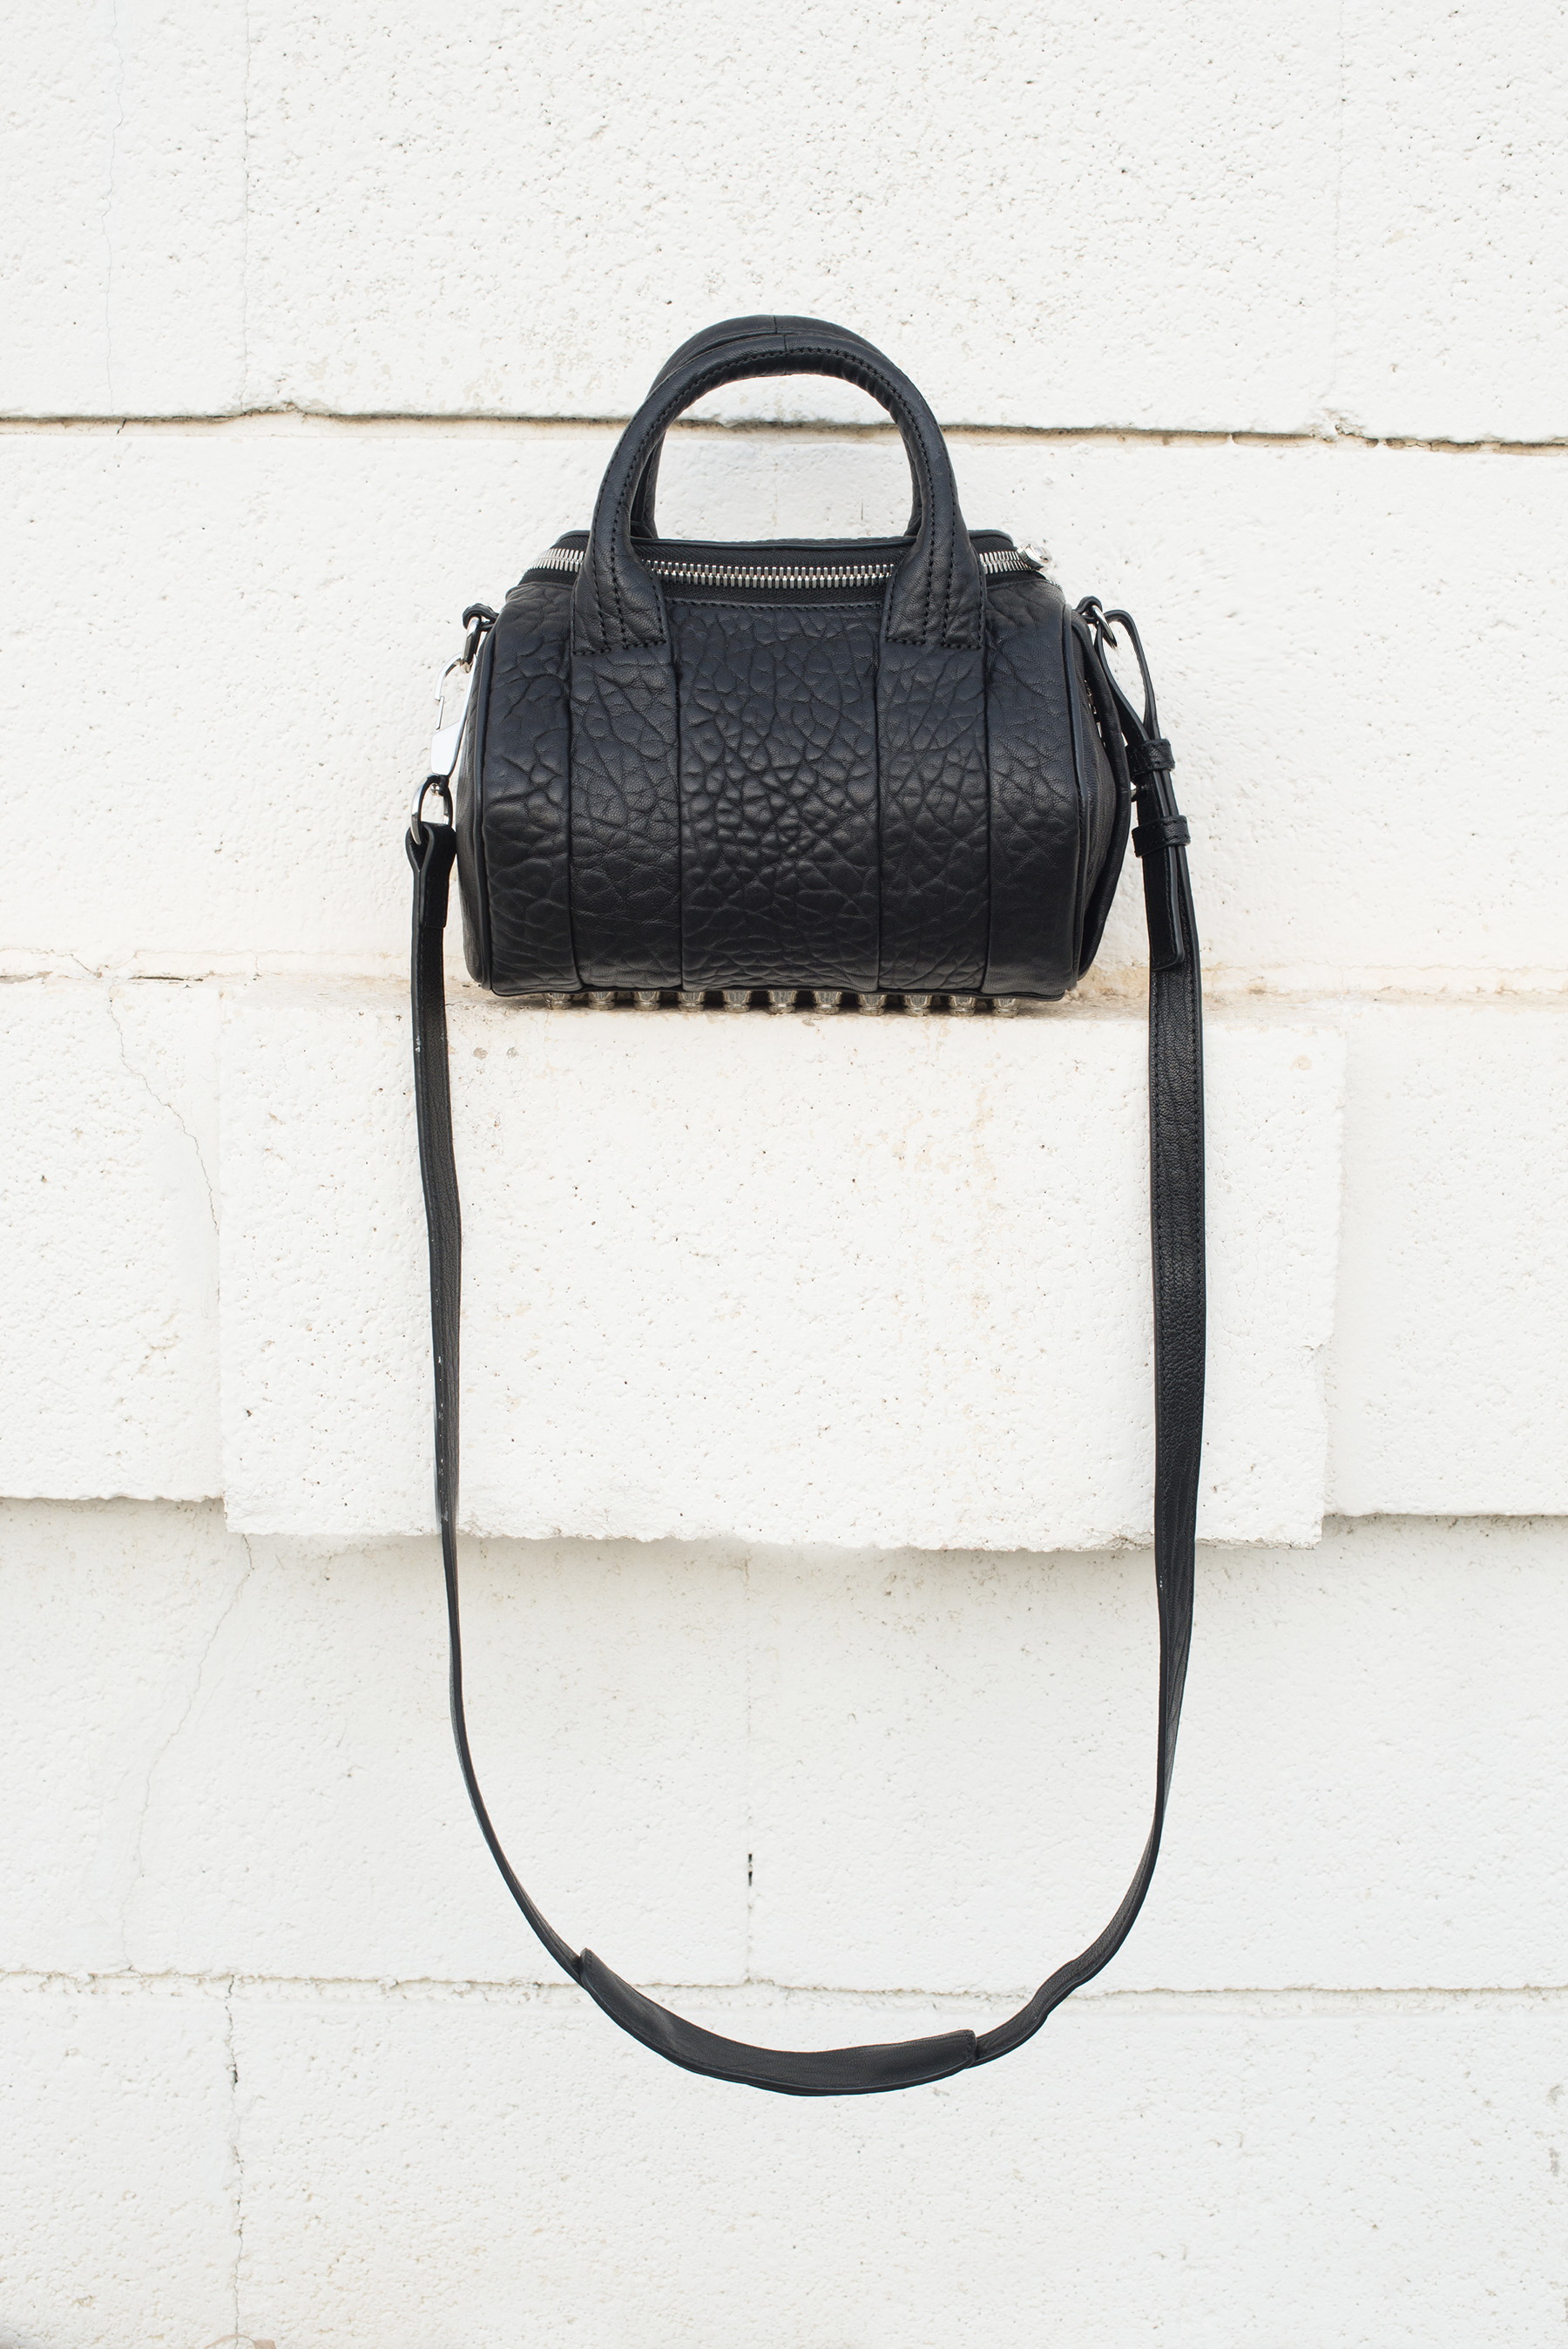 Alexander Wang Mini Rockie Oyster Soft Pebble Leather Bag